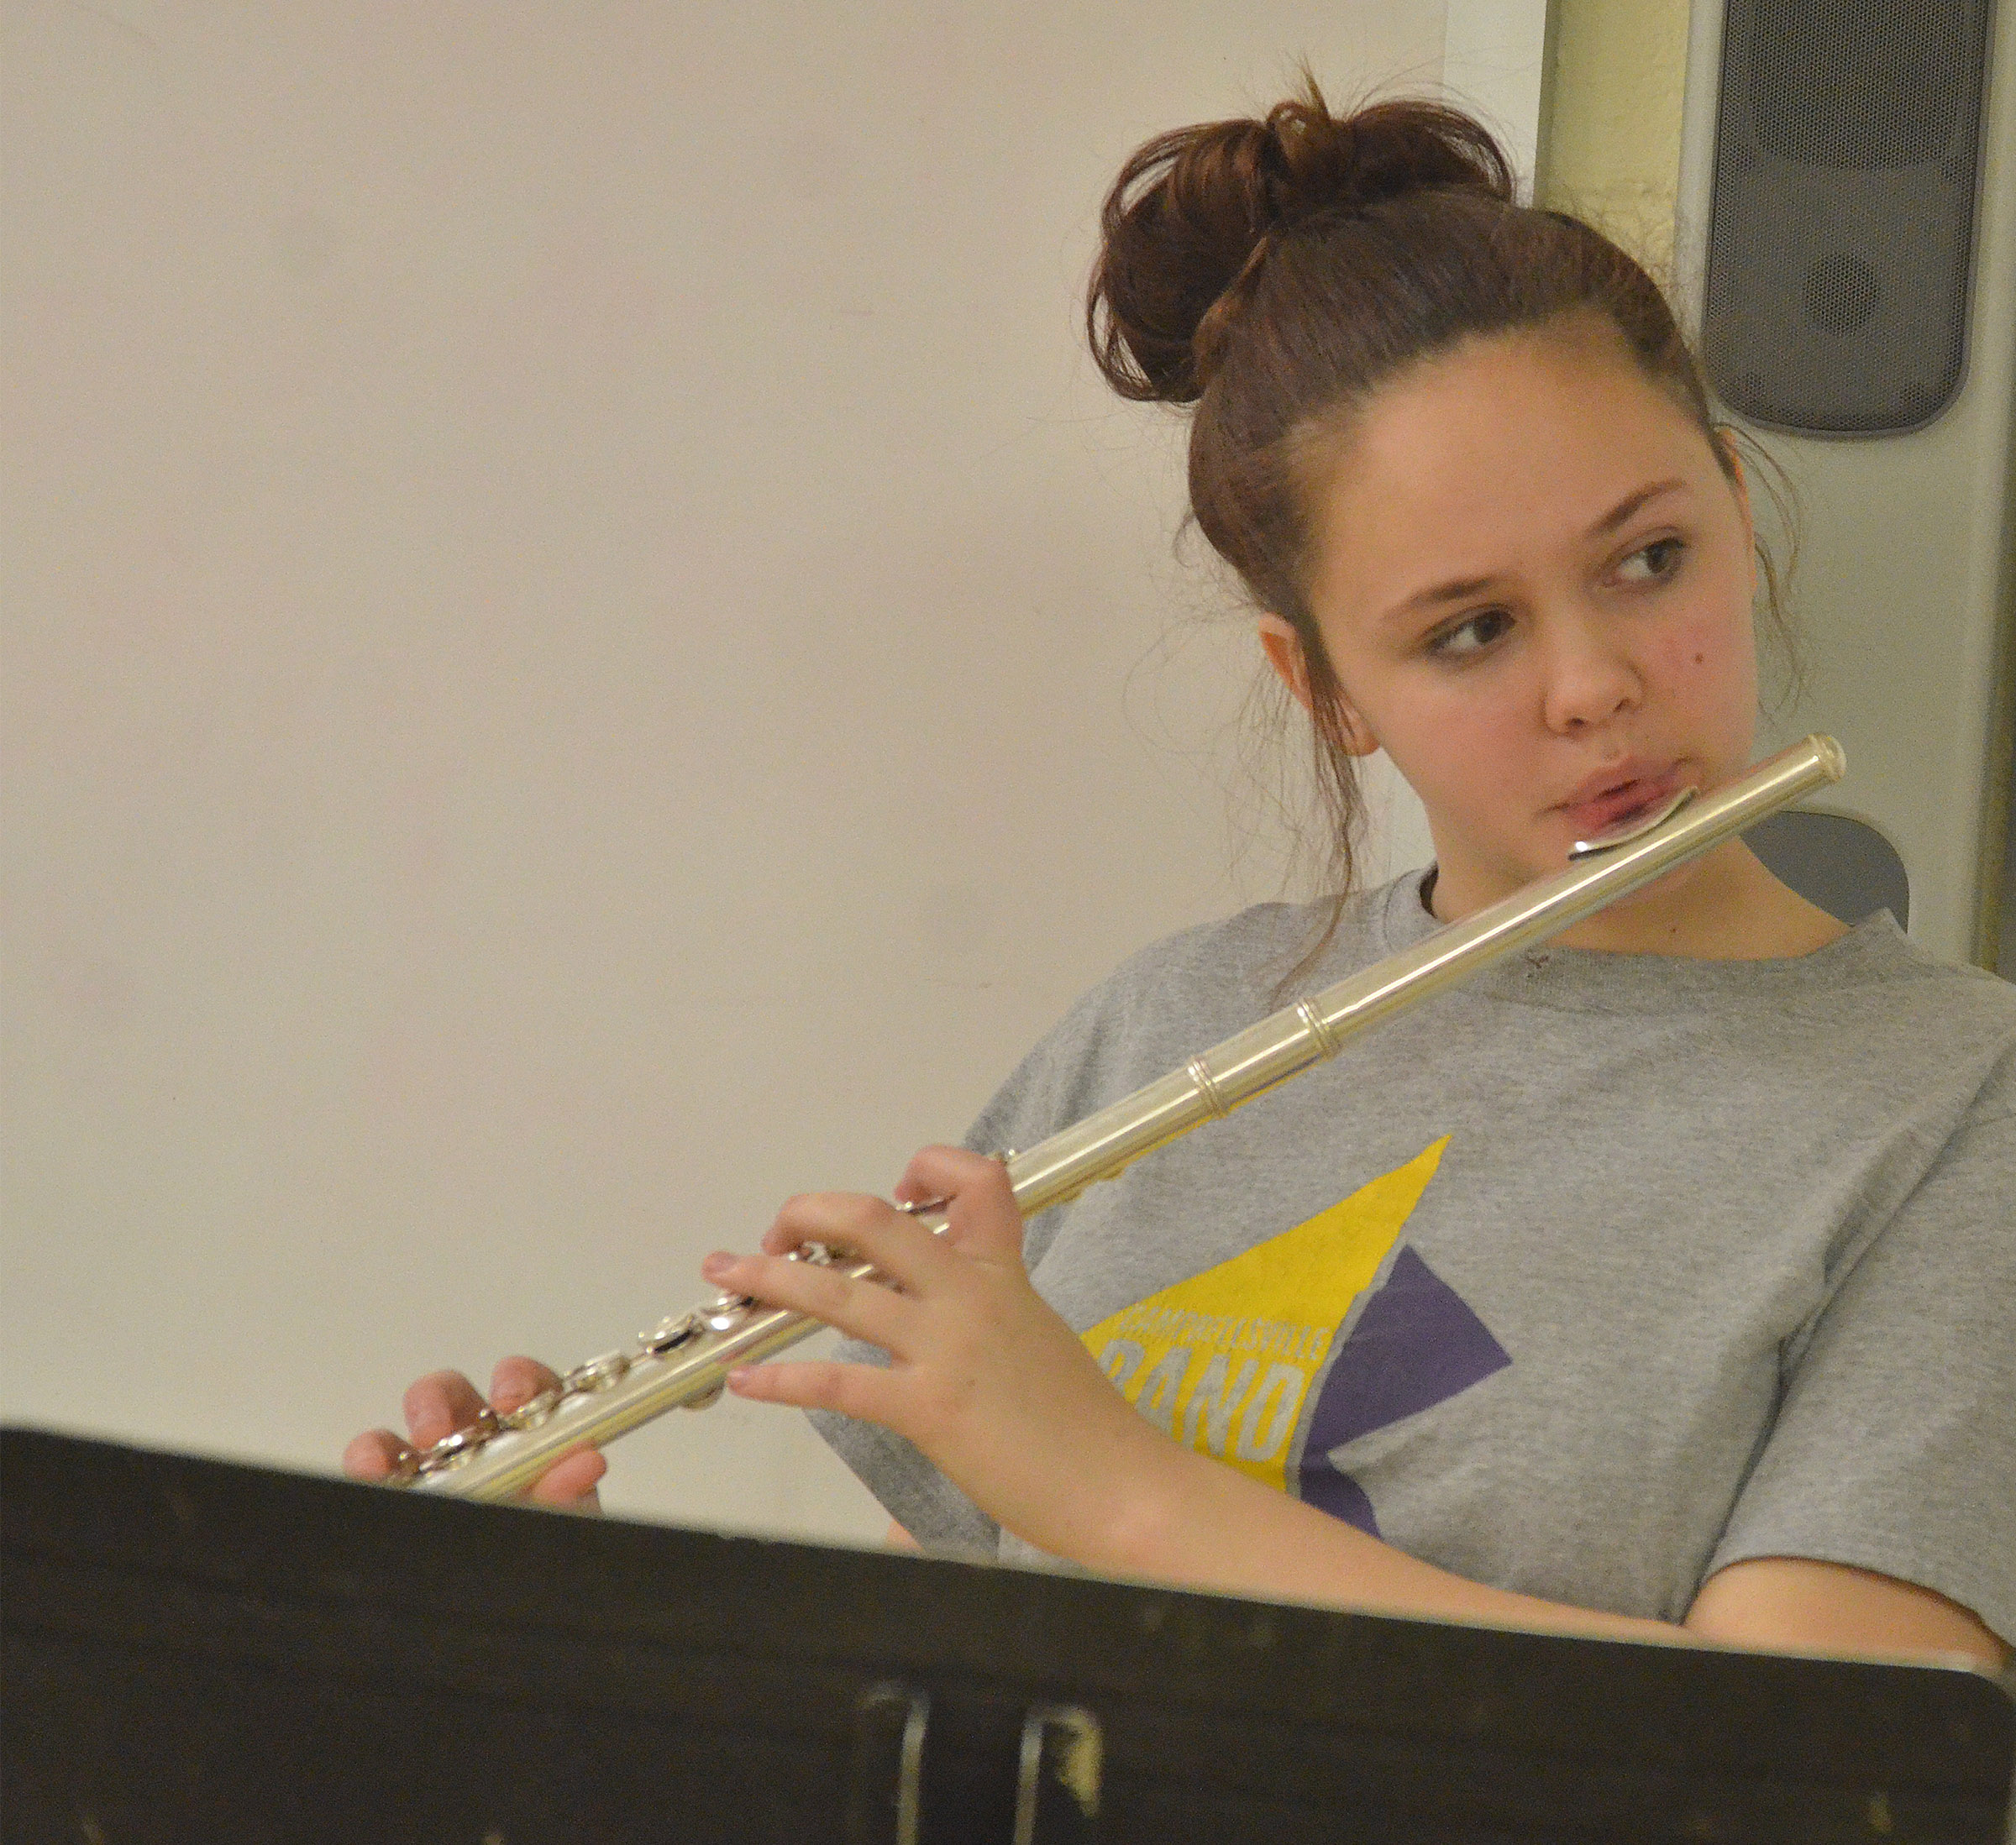 Campbellsville Middle School eighth-grader Mystique Jones plays flute.